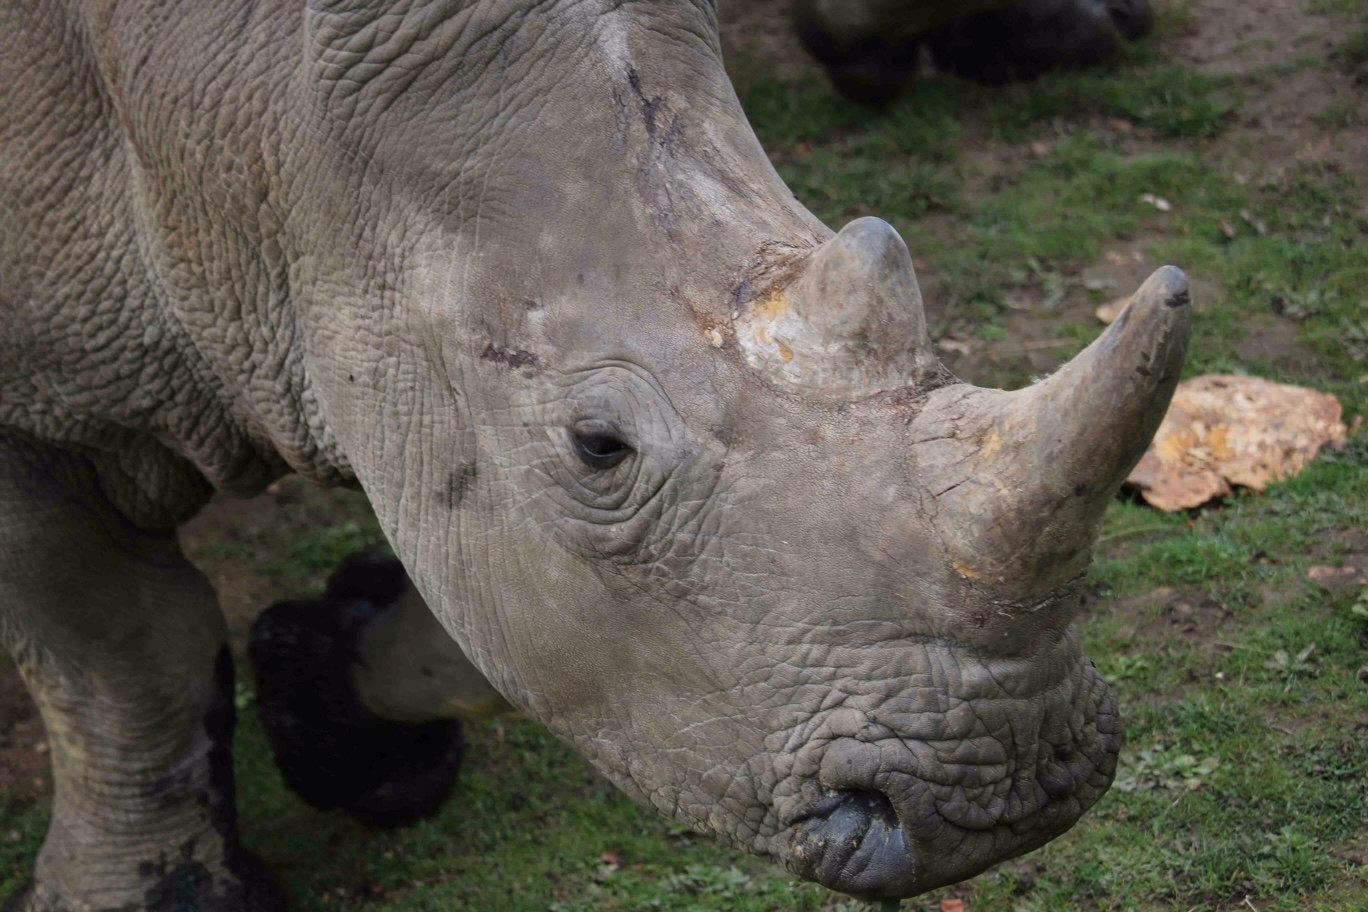 The four-year-old male white rhino called Vince is seen in this handout picture released by the Domaine de Thoiry (Thoiry zoo and wildlife park) on March 7, 2017. The four-year-old male white rhino called Vince was found dead in his enclosure by his keeper at the Thoiry zoo and wildlife park about 50 km (30 miles) west of Paris on Tuesday morning after an overnight break-in, the zoo said. Poachers broke into a French zoo, shot dead a rare white rhinoceros and sawed off its horn in what is believed to be the first time in Europe that a rhino in captivity has been attacked and killed. Arthus Boutin /Domaine de Thoiry/Handout via REUTERS THIS IMAGE HAS BEEN SUPPLIED BY A THIRD PARTY. FOR EDITORIAL USE ONLY. NO RESALES. NO ARCHIVES